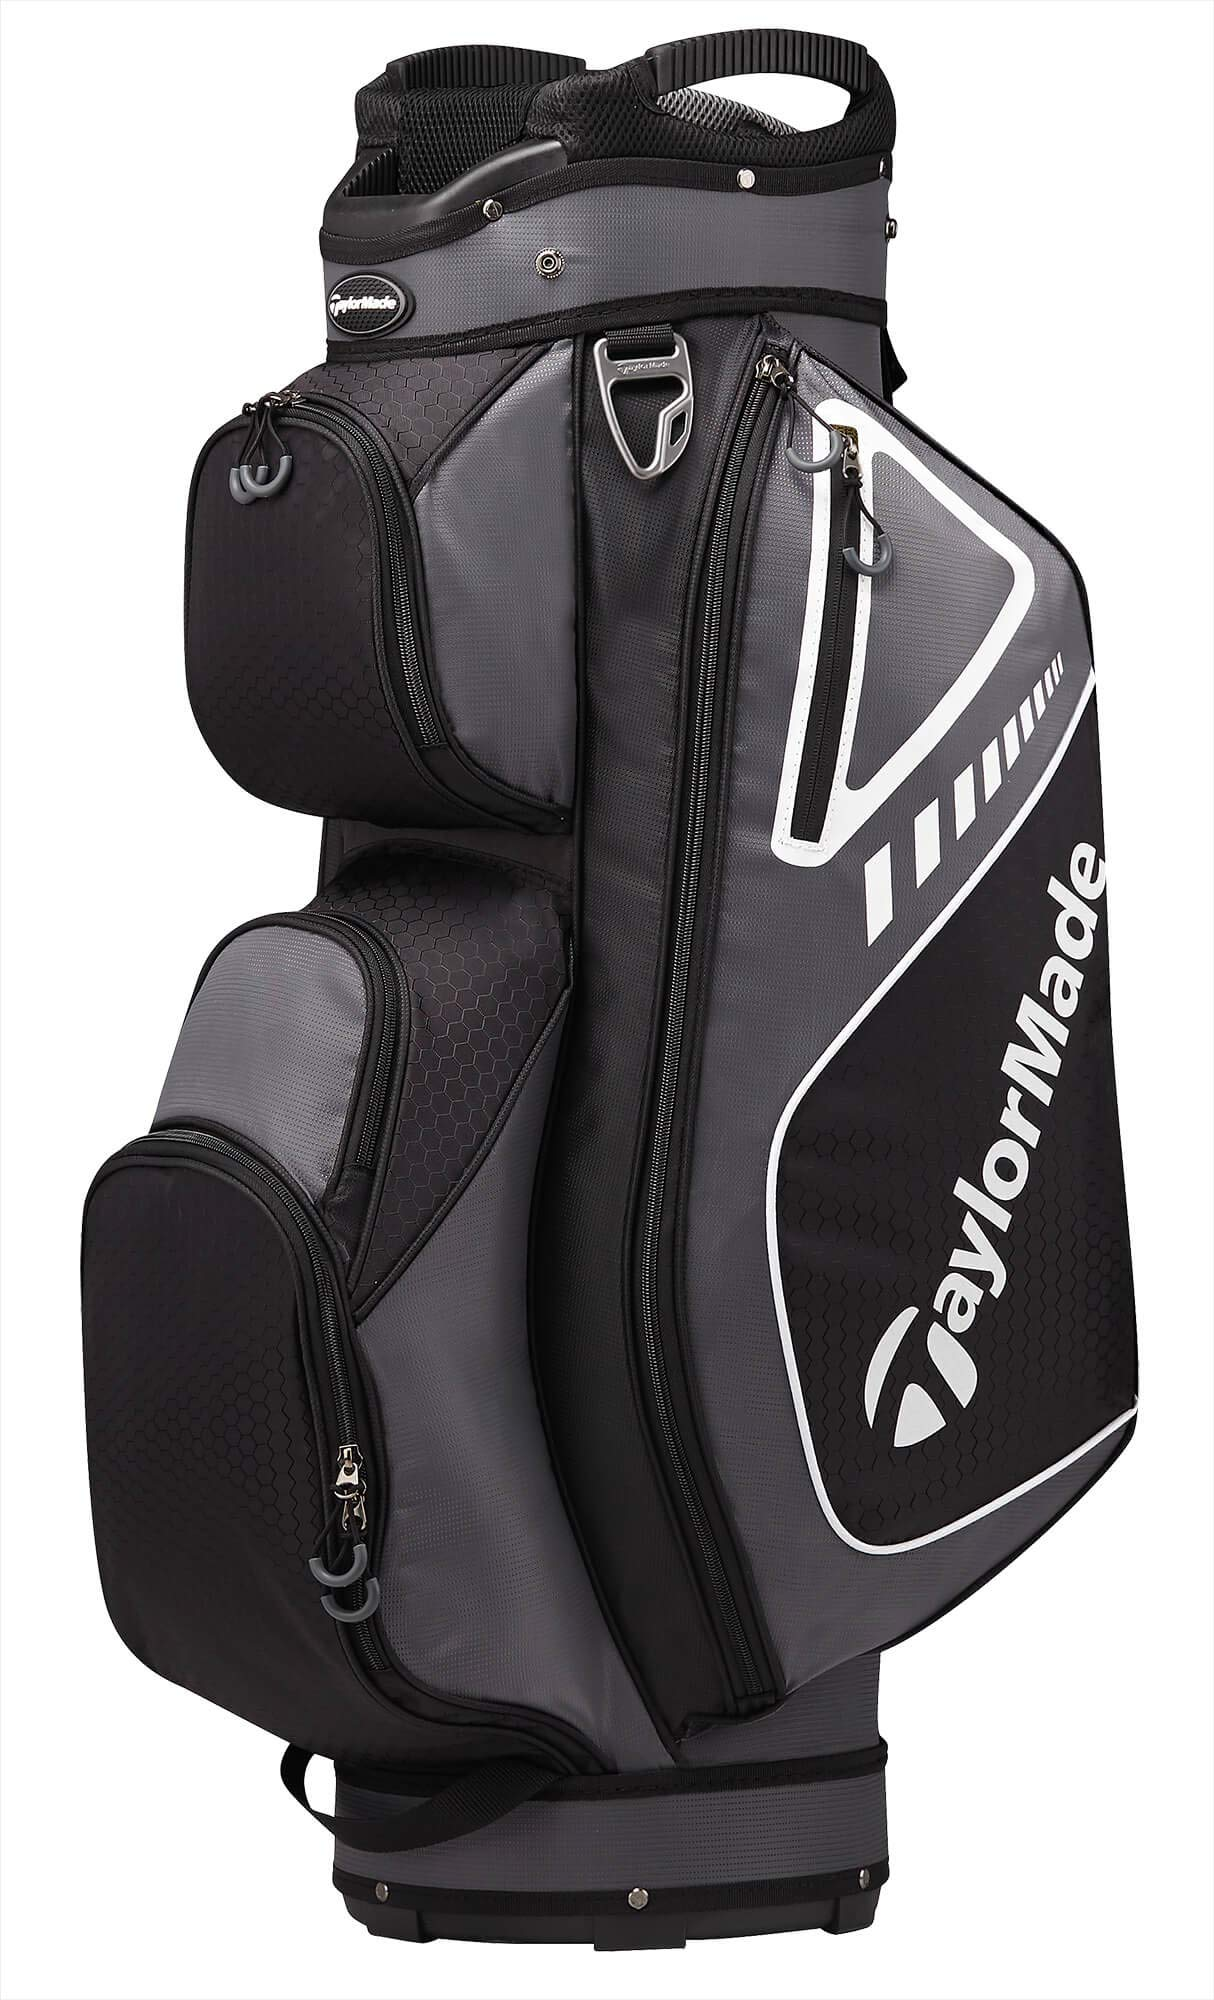 TaylorMade 2019 Golf Select Cart Bag, Gray/Black by TaylorMade